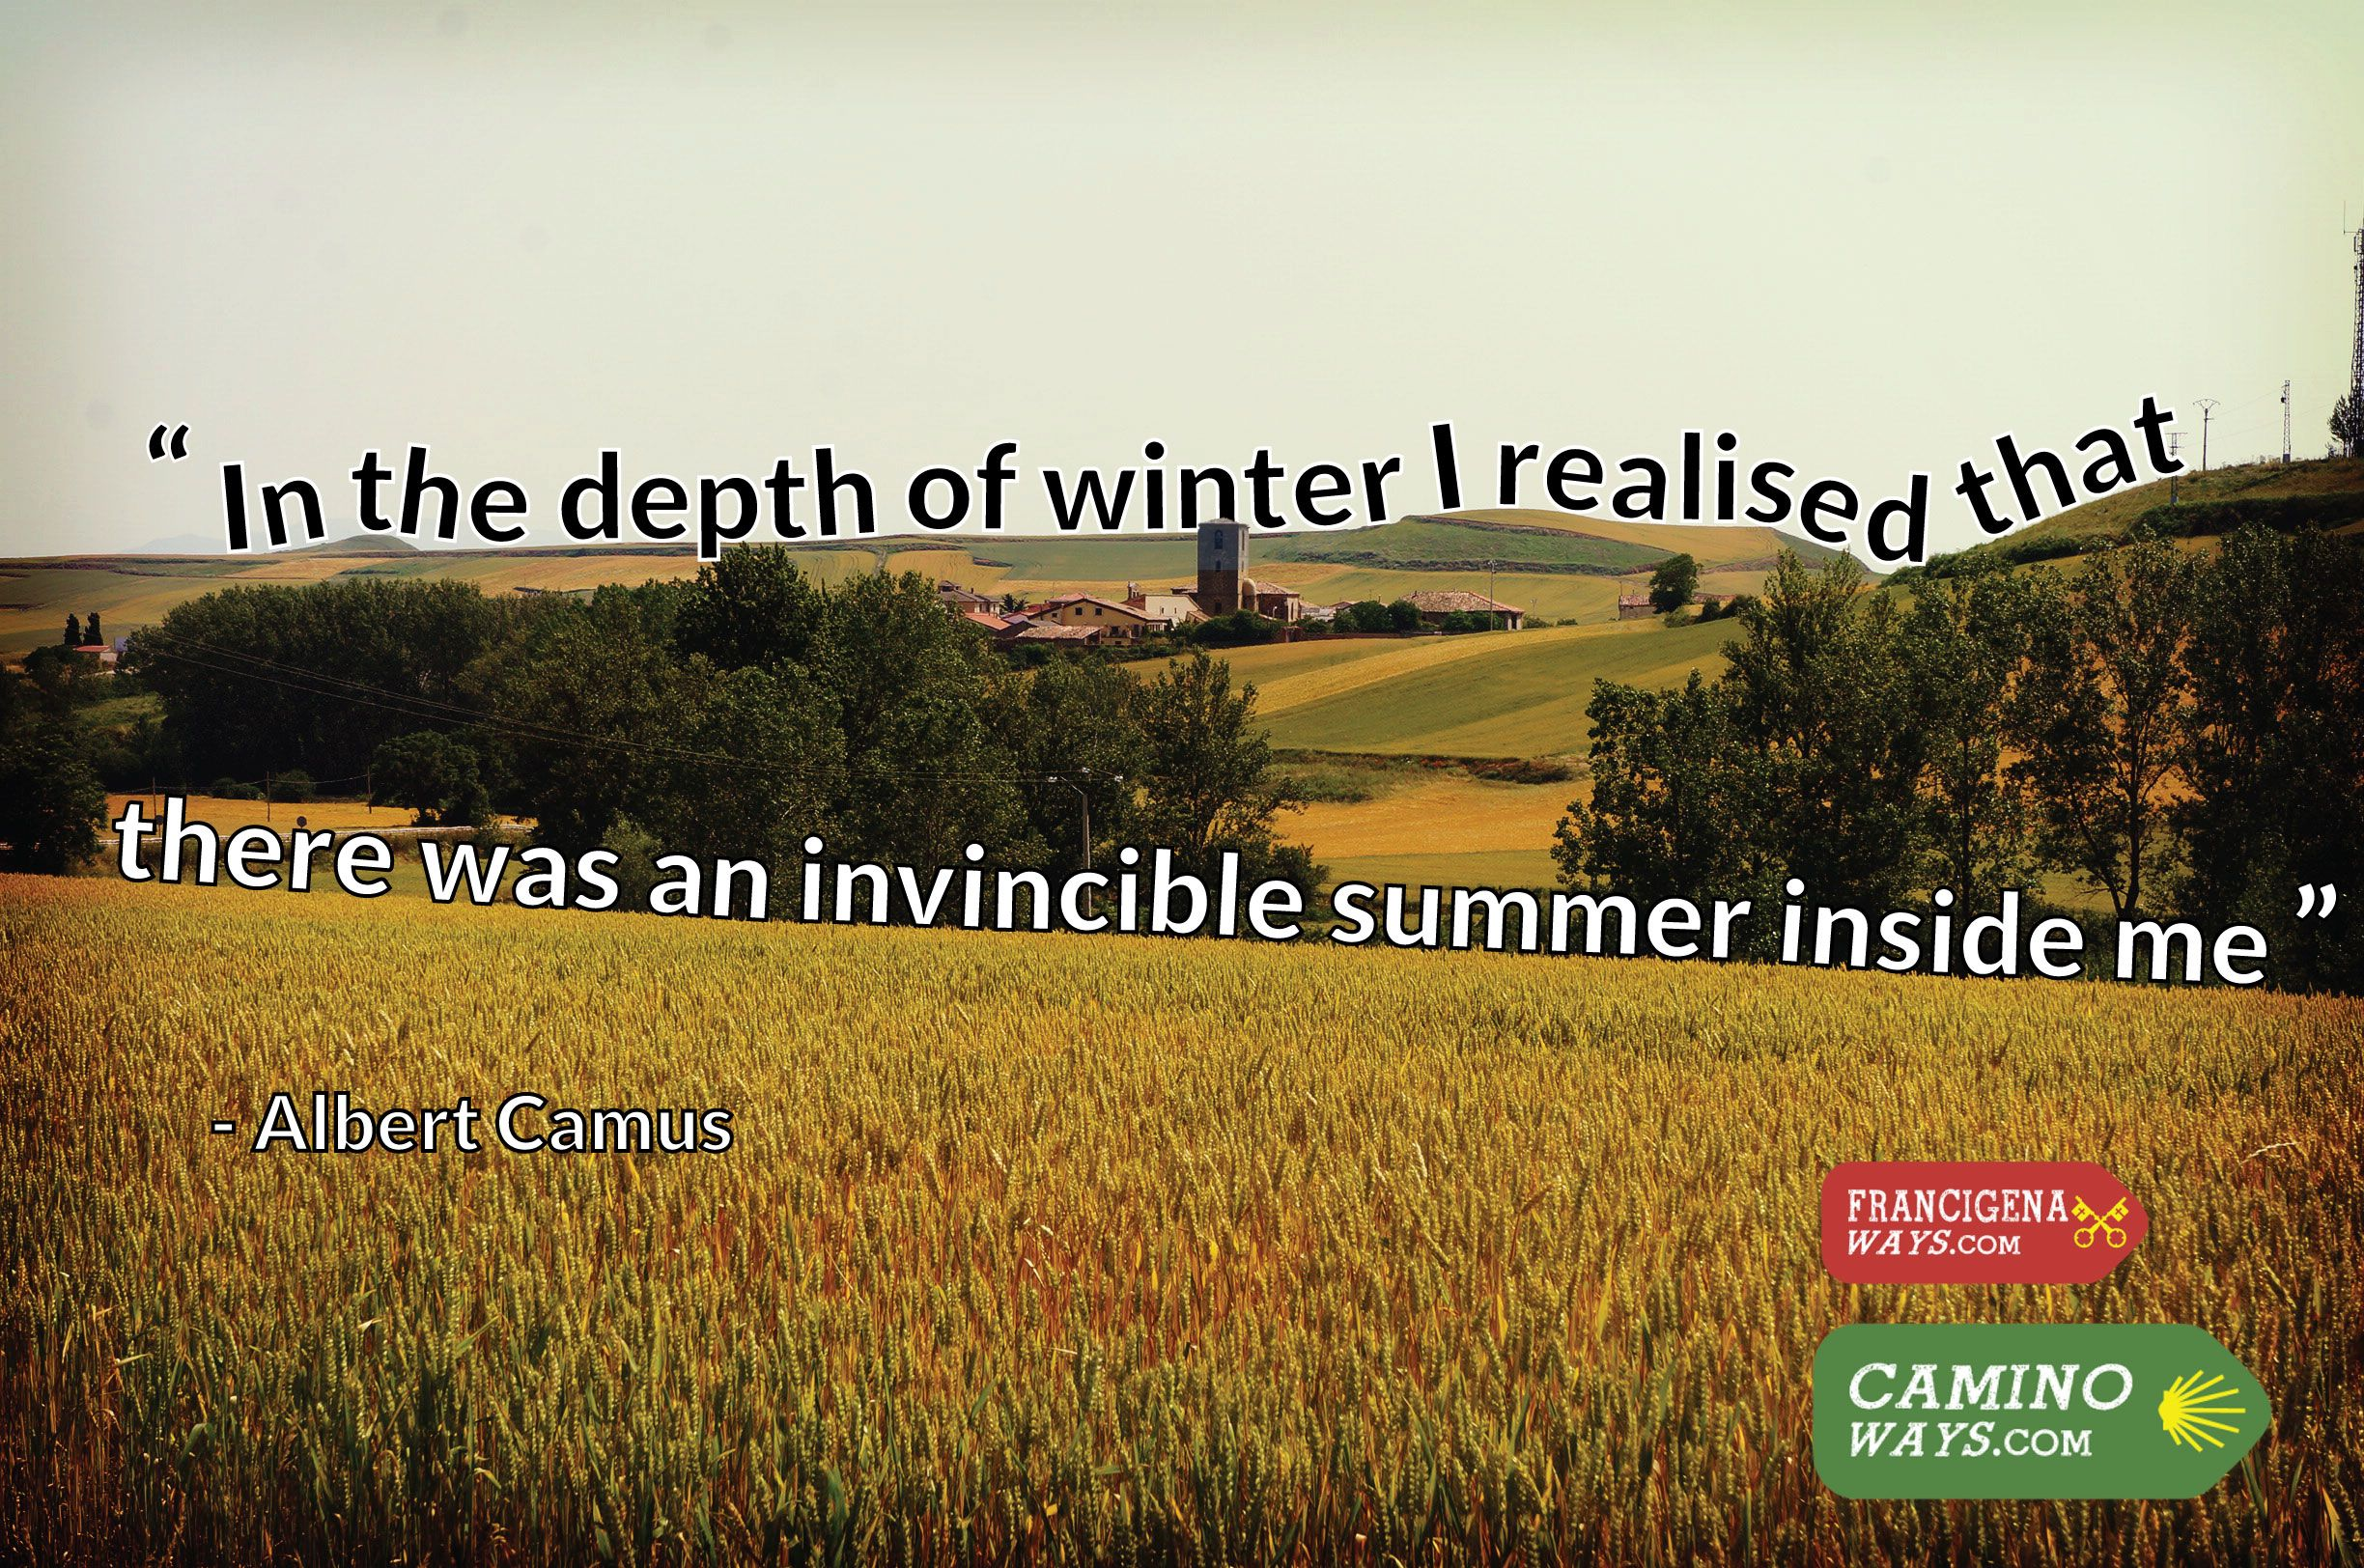 """In the depth of winter I realised that there was an invincible summer inside me."" #AlbertCamus #CaminoWays #FrancigenaWays #SundayQuote"